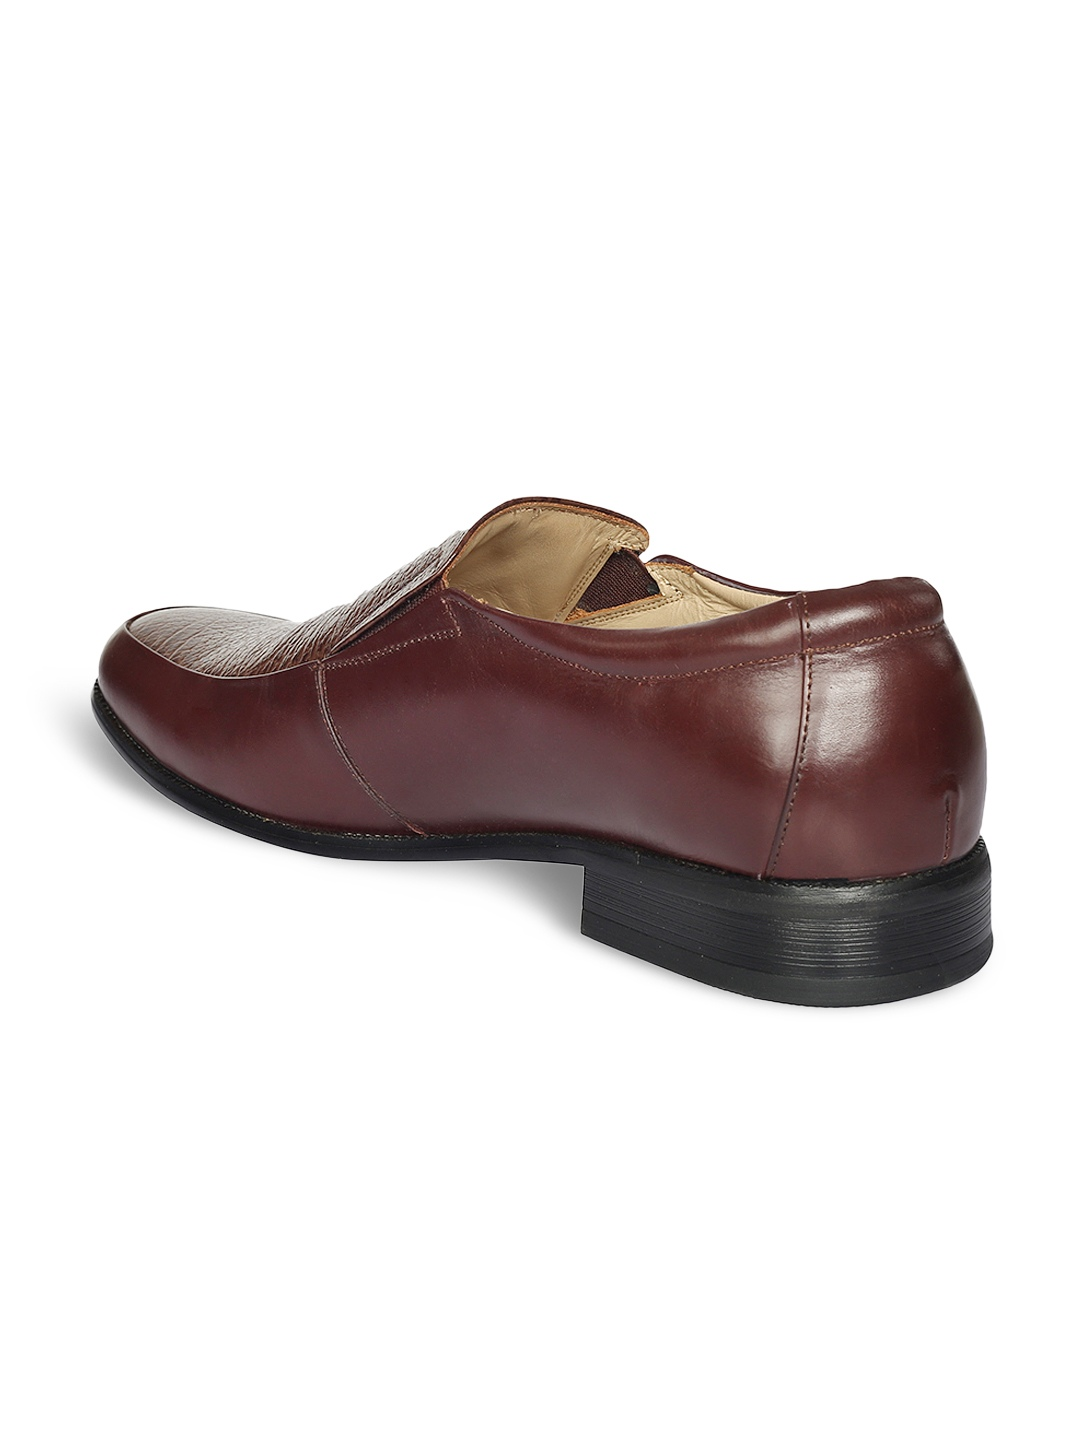 myntra claude lorrain brown leather formal shoes